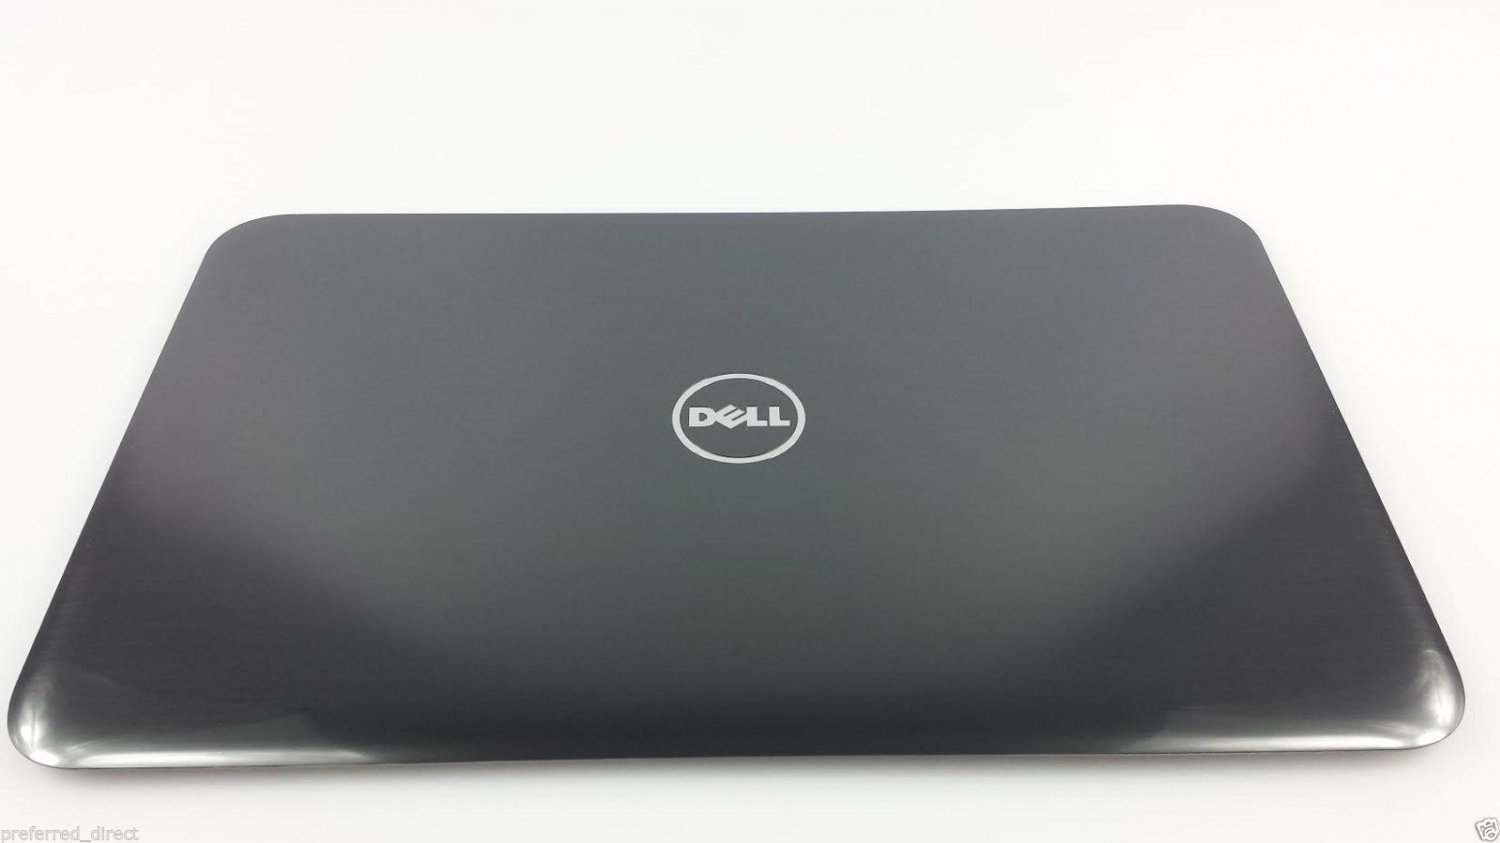 Dell OEM New Inspiron 5720 LCD Back Cover 94DN5 Gray